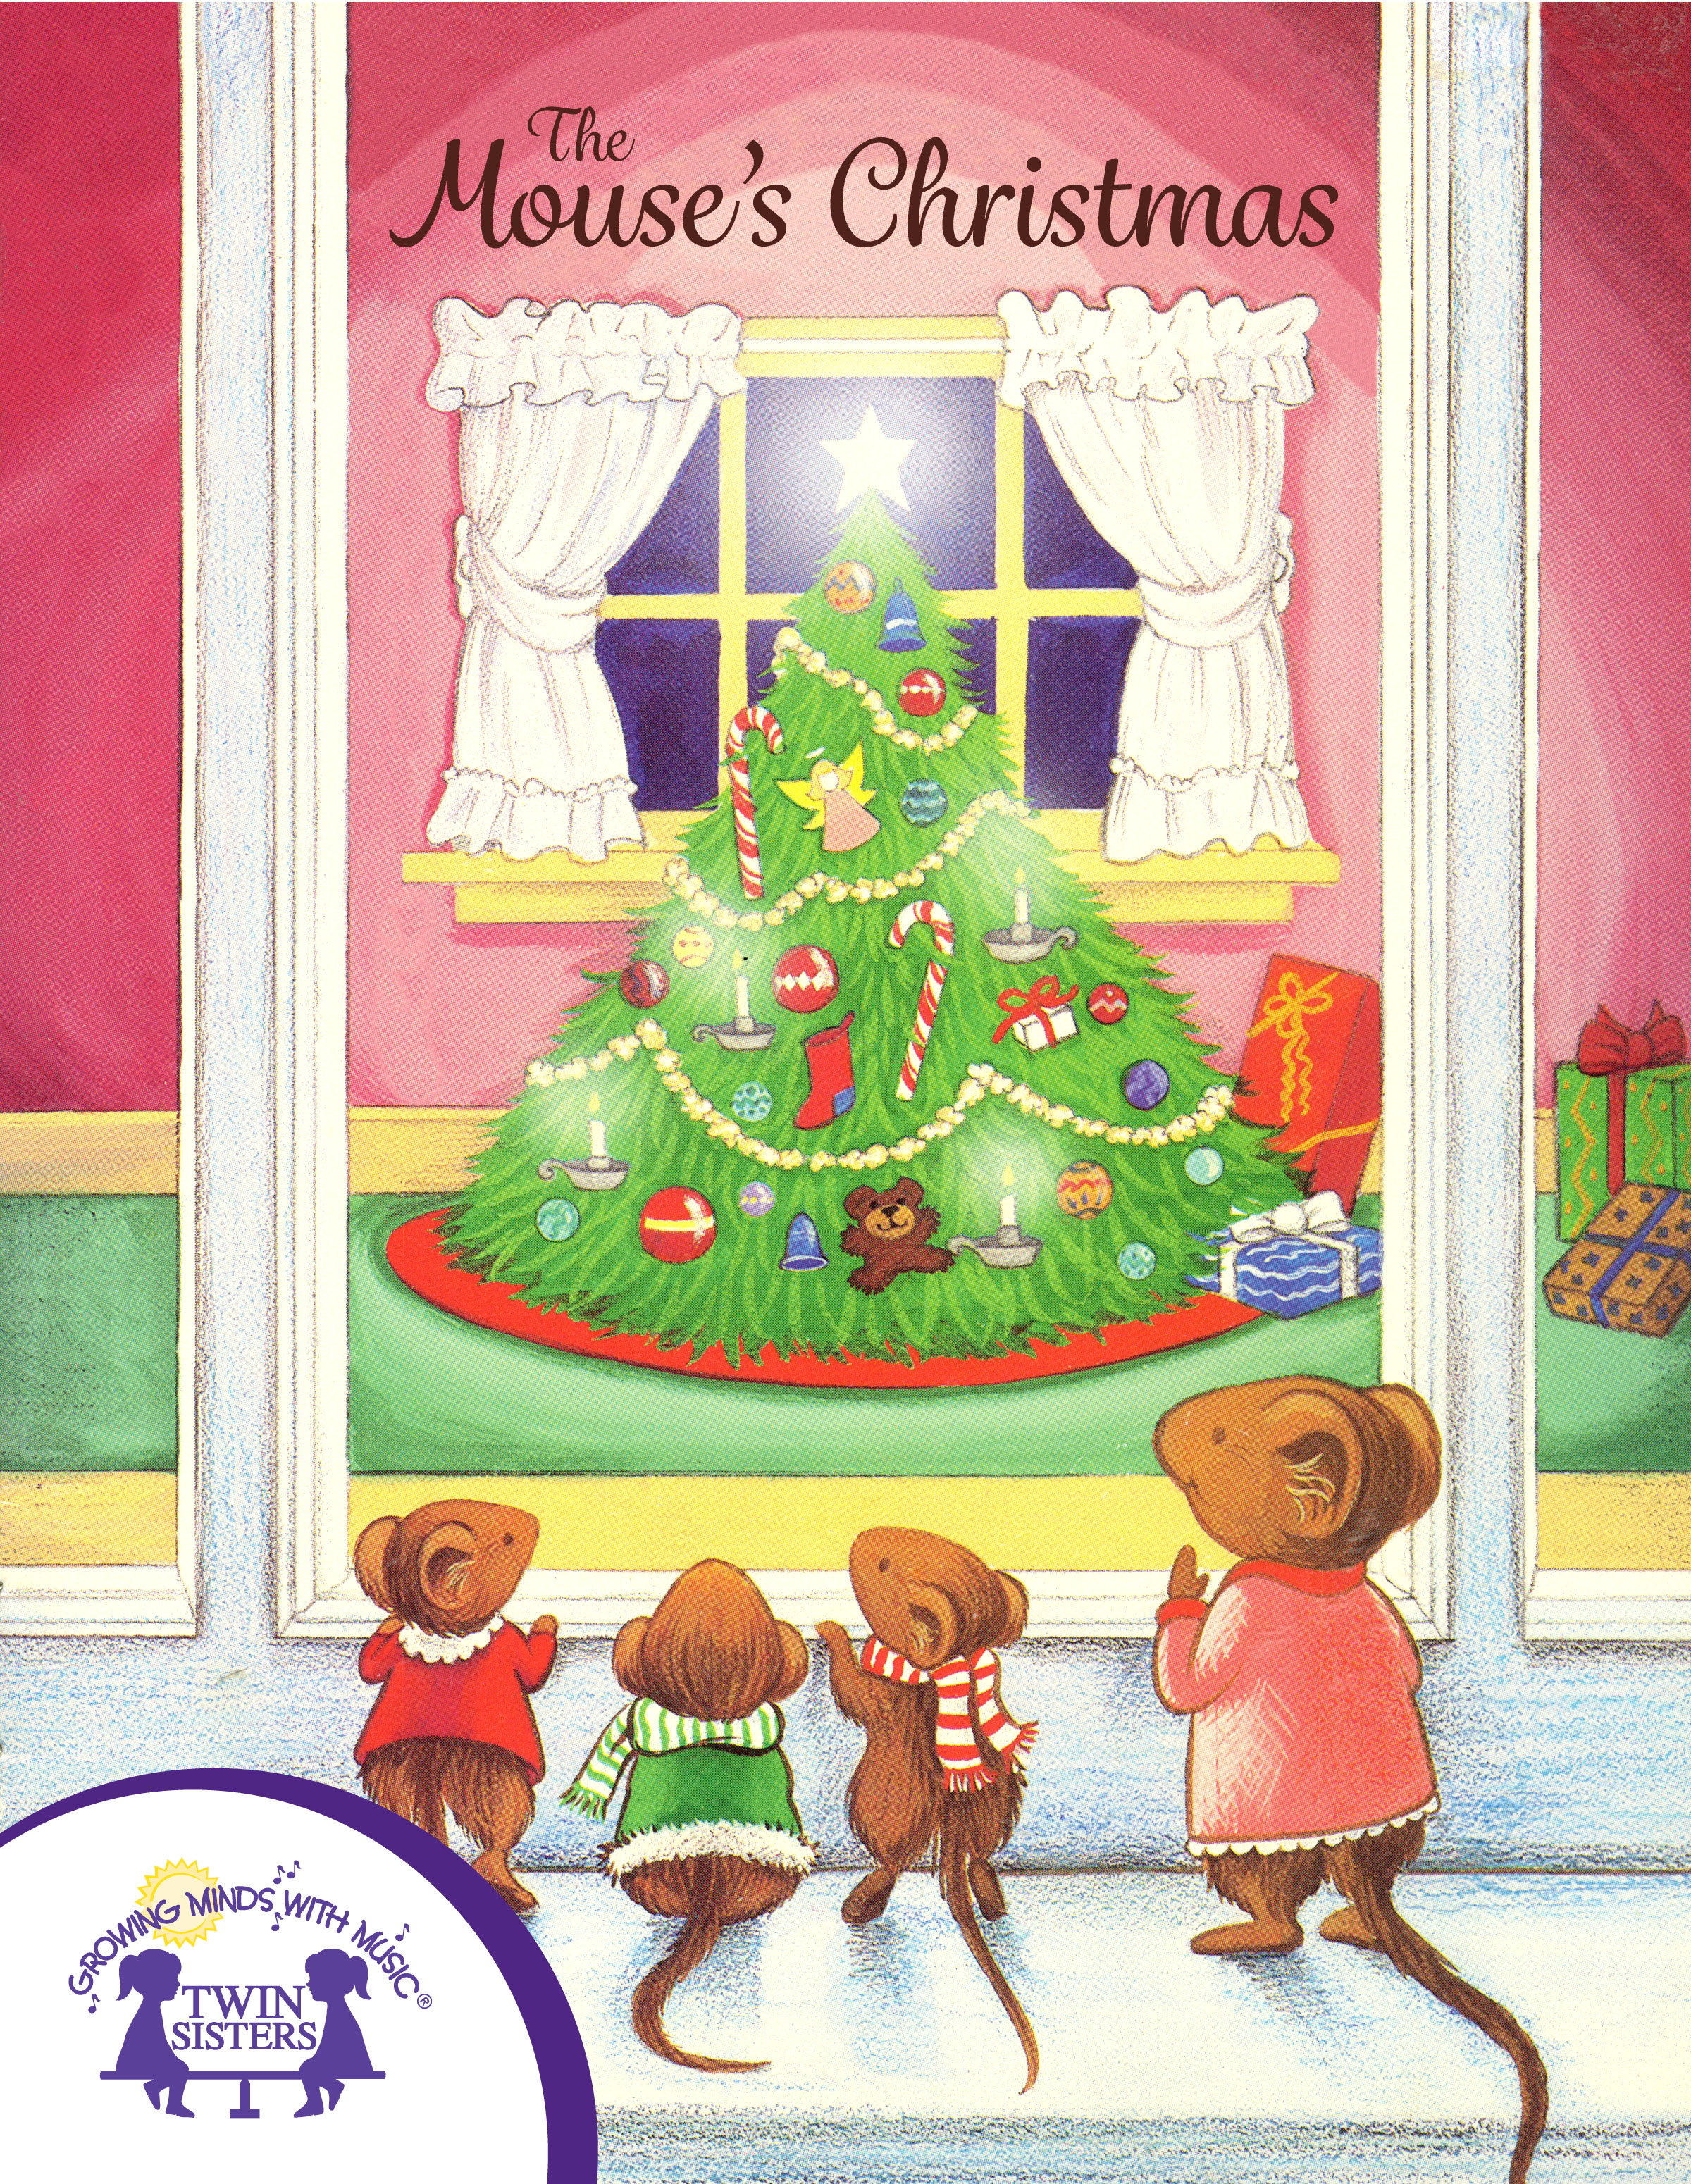 The Mouse's Christmas By Kit Schorsch